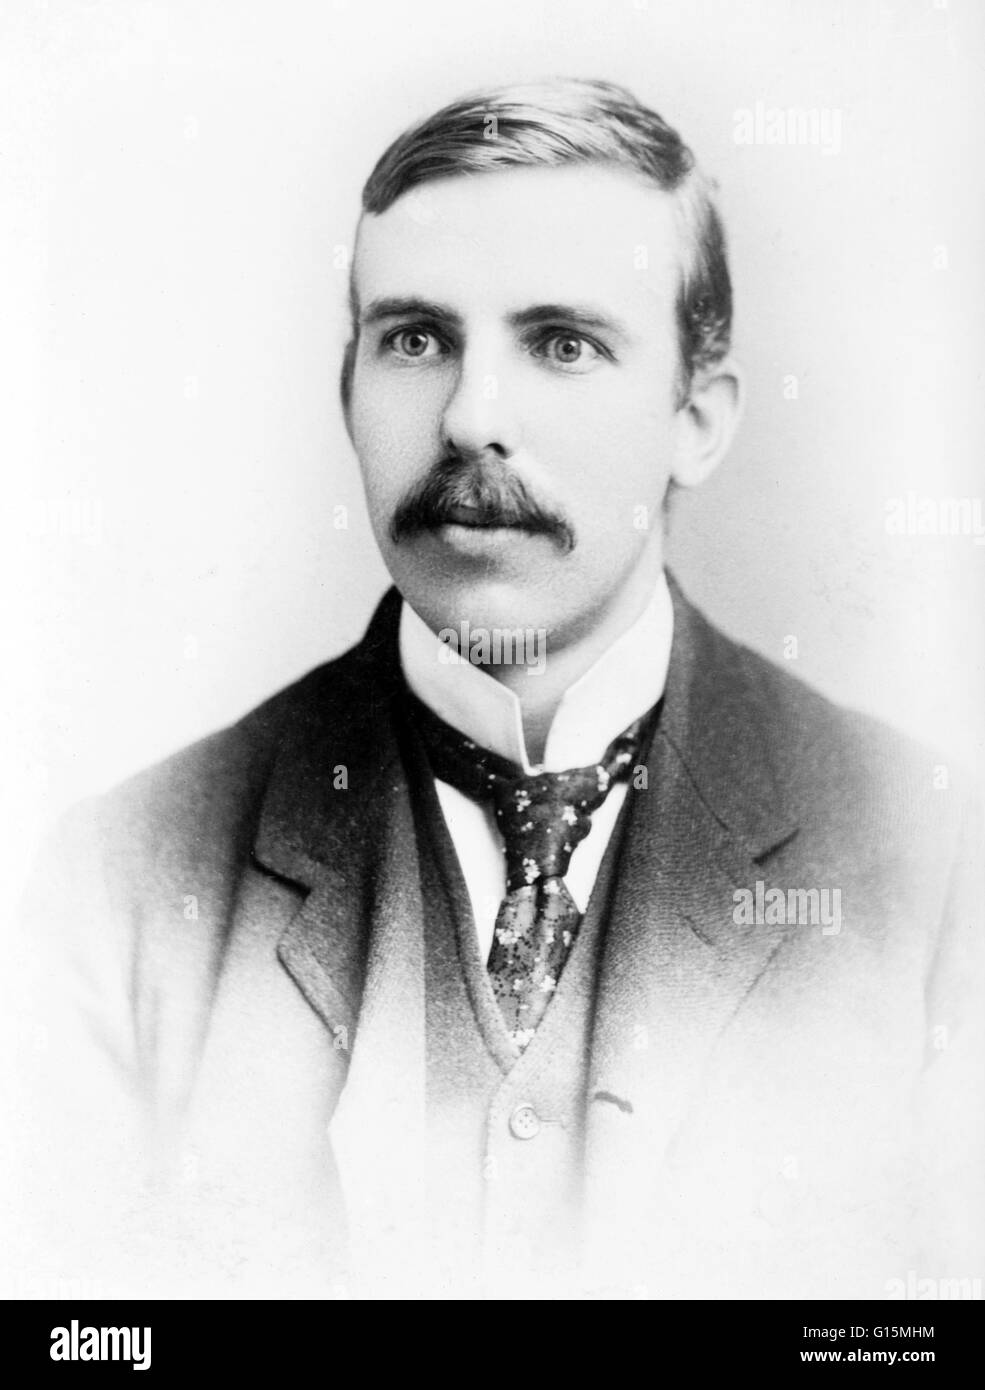 Ernest Rutherford (August 30, 1871 - October 19, 1937) was a New Zealand-born British chemist and physicist who Stock Photo